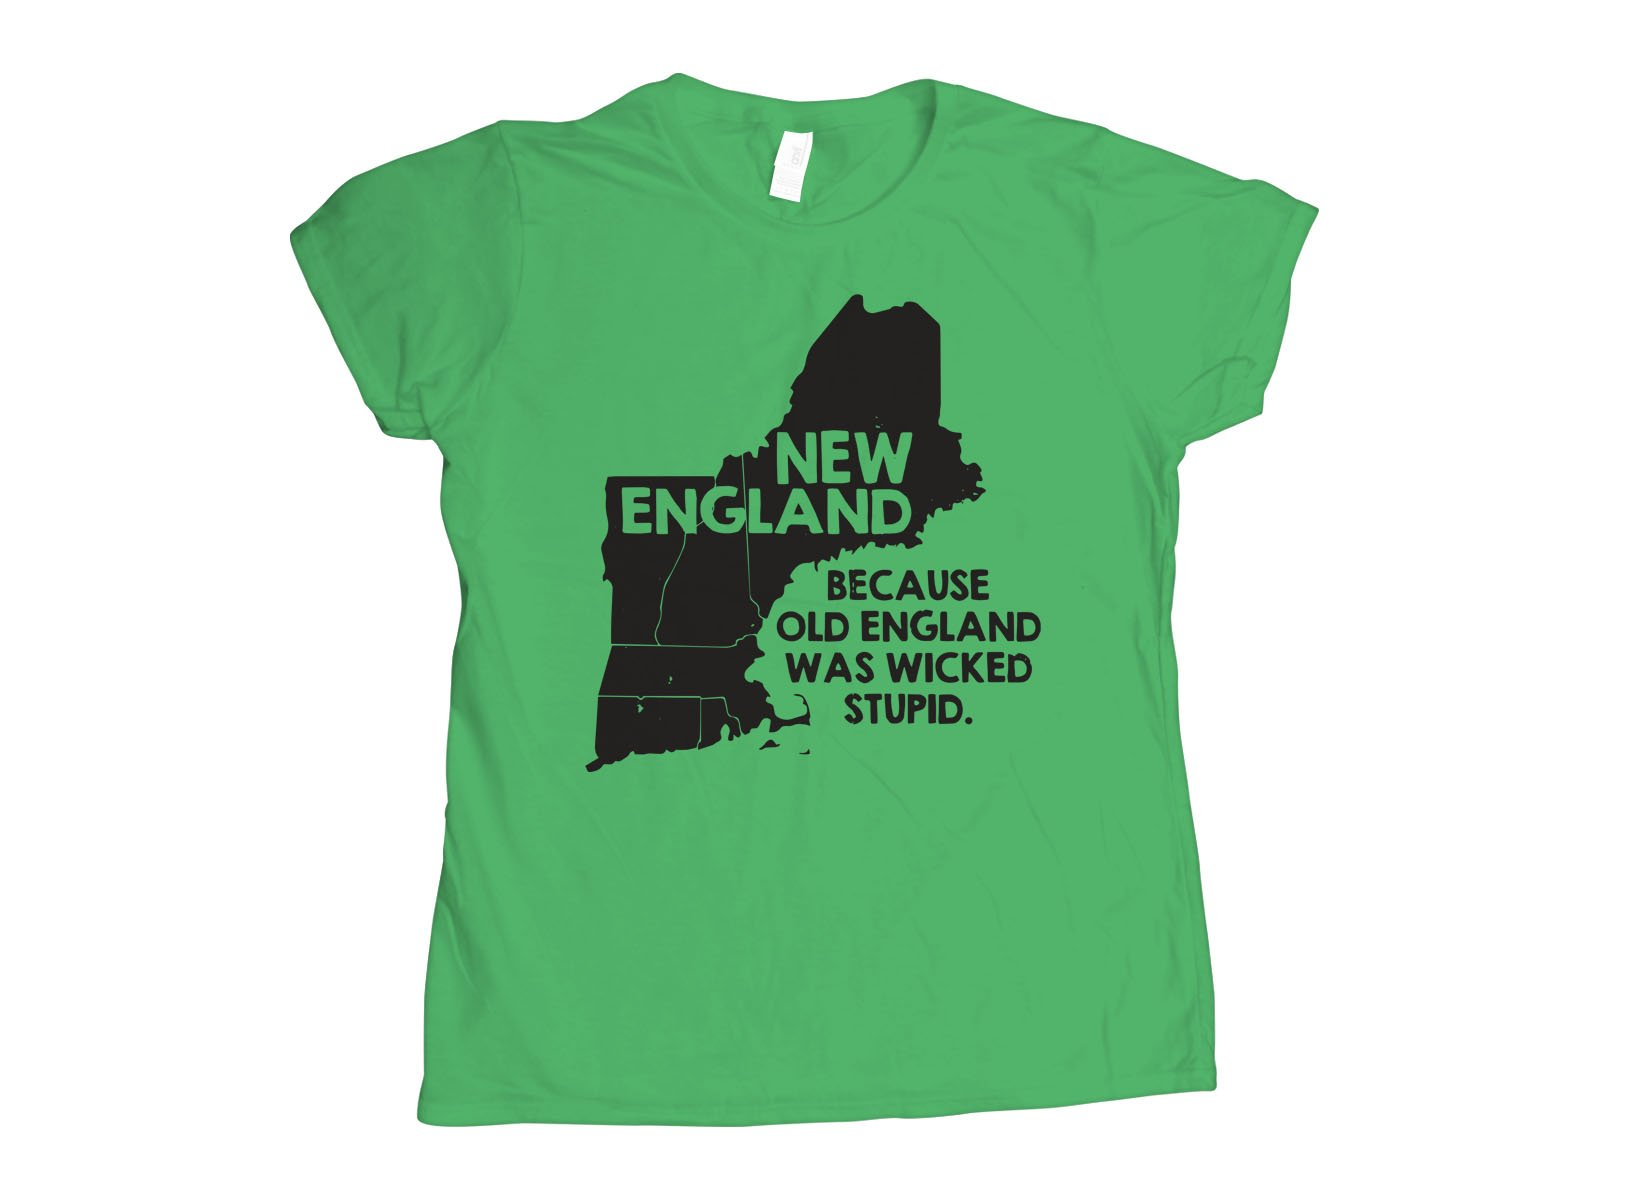 New England, Because Old England Was Wicked Stupid on Womens T-Shirt